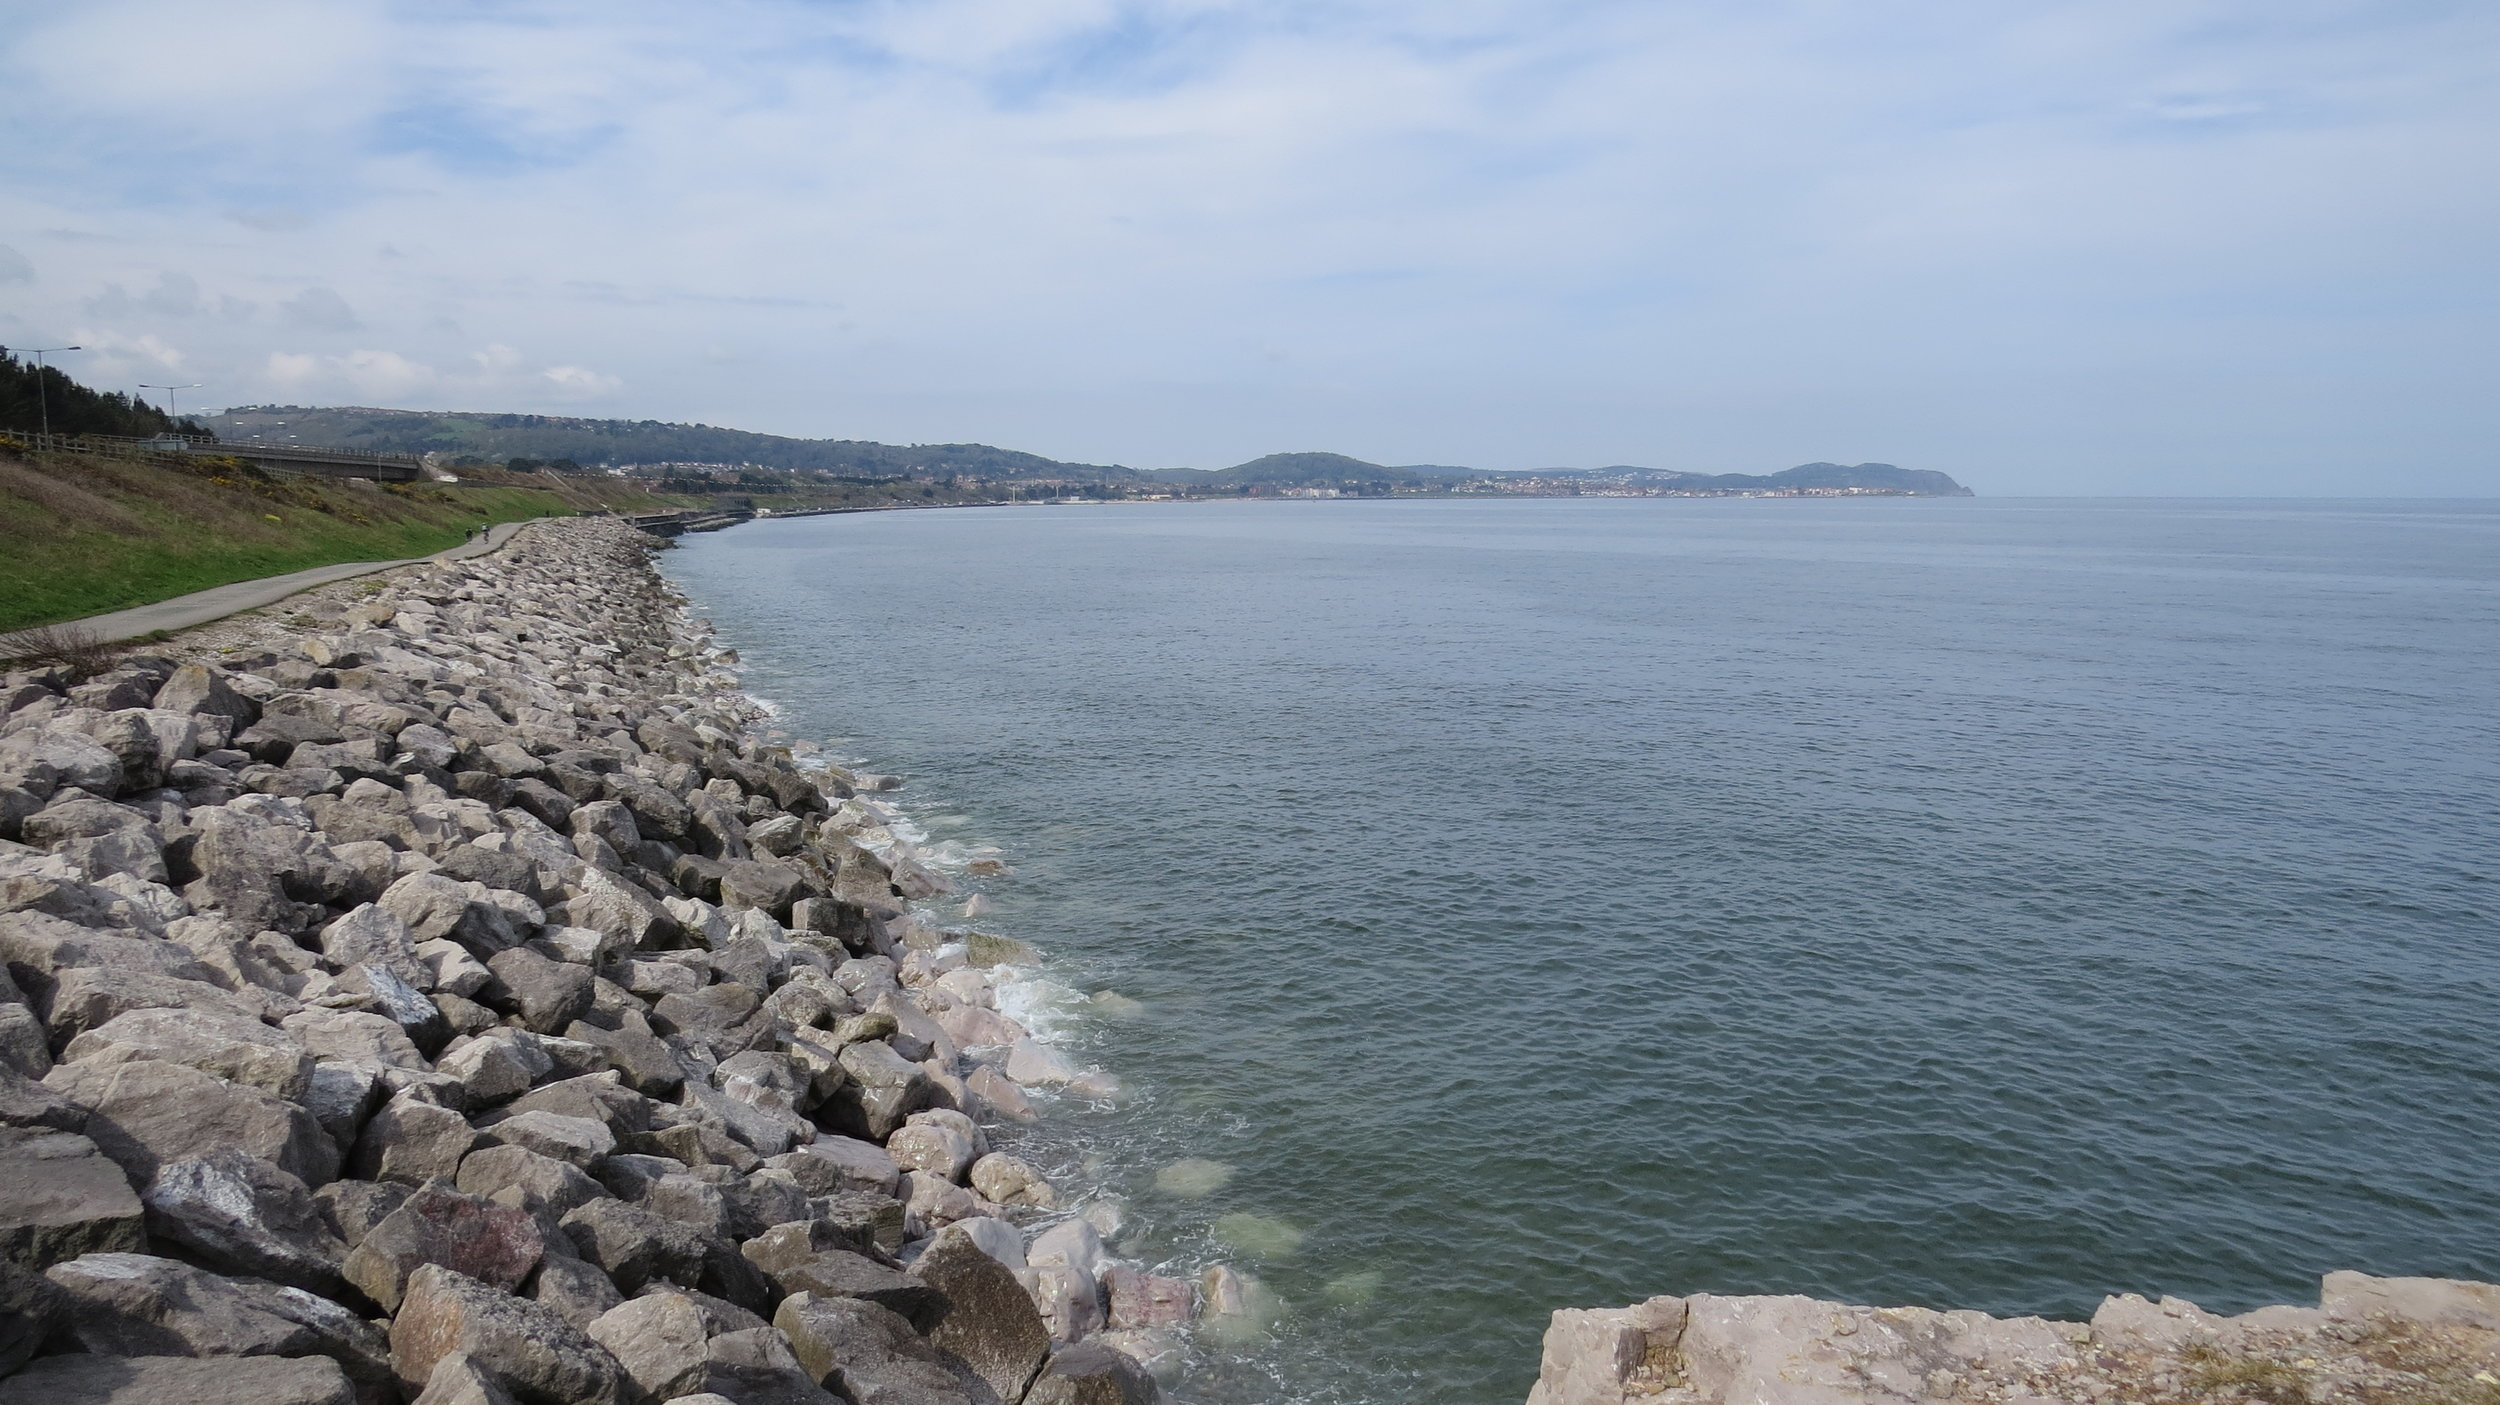 Looking Back to Colwyn Bay